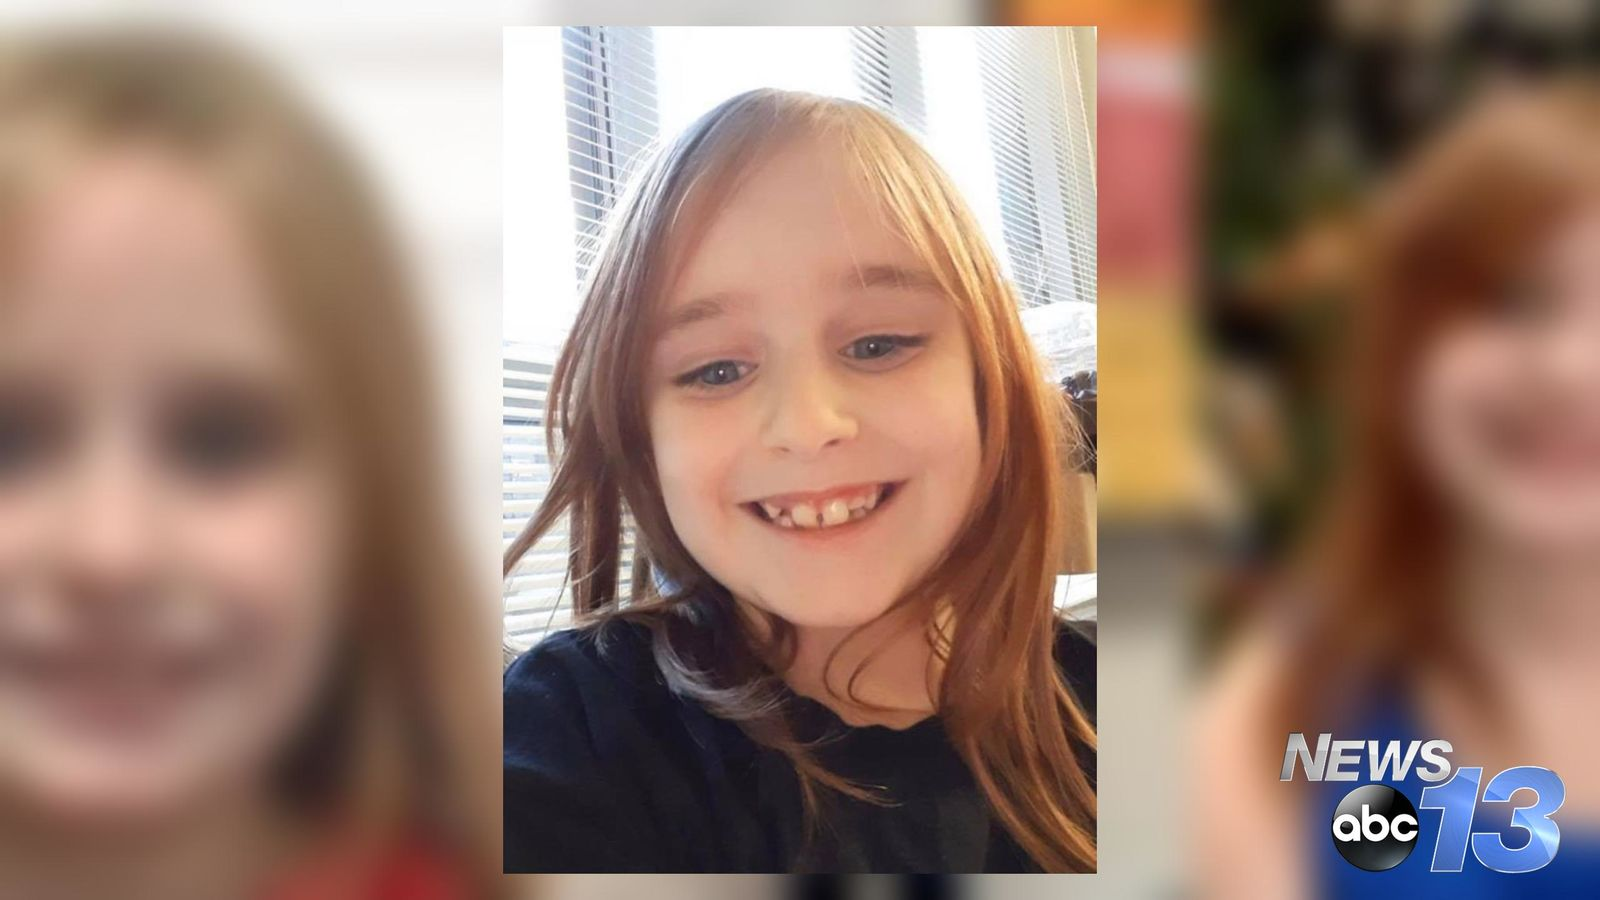 Faye Marie Swetlik, 6, was last seen Monday, Feb 10, 2020, outside her home in Cayce, South Carolina. Anyone with any information should call 803-205-4444 (Photos courtesy Cayce Department of Public Safety)